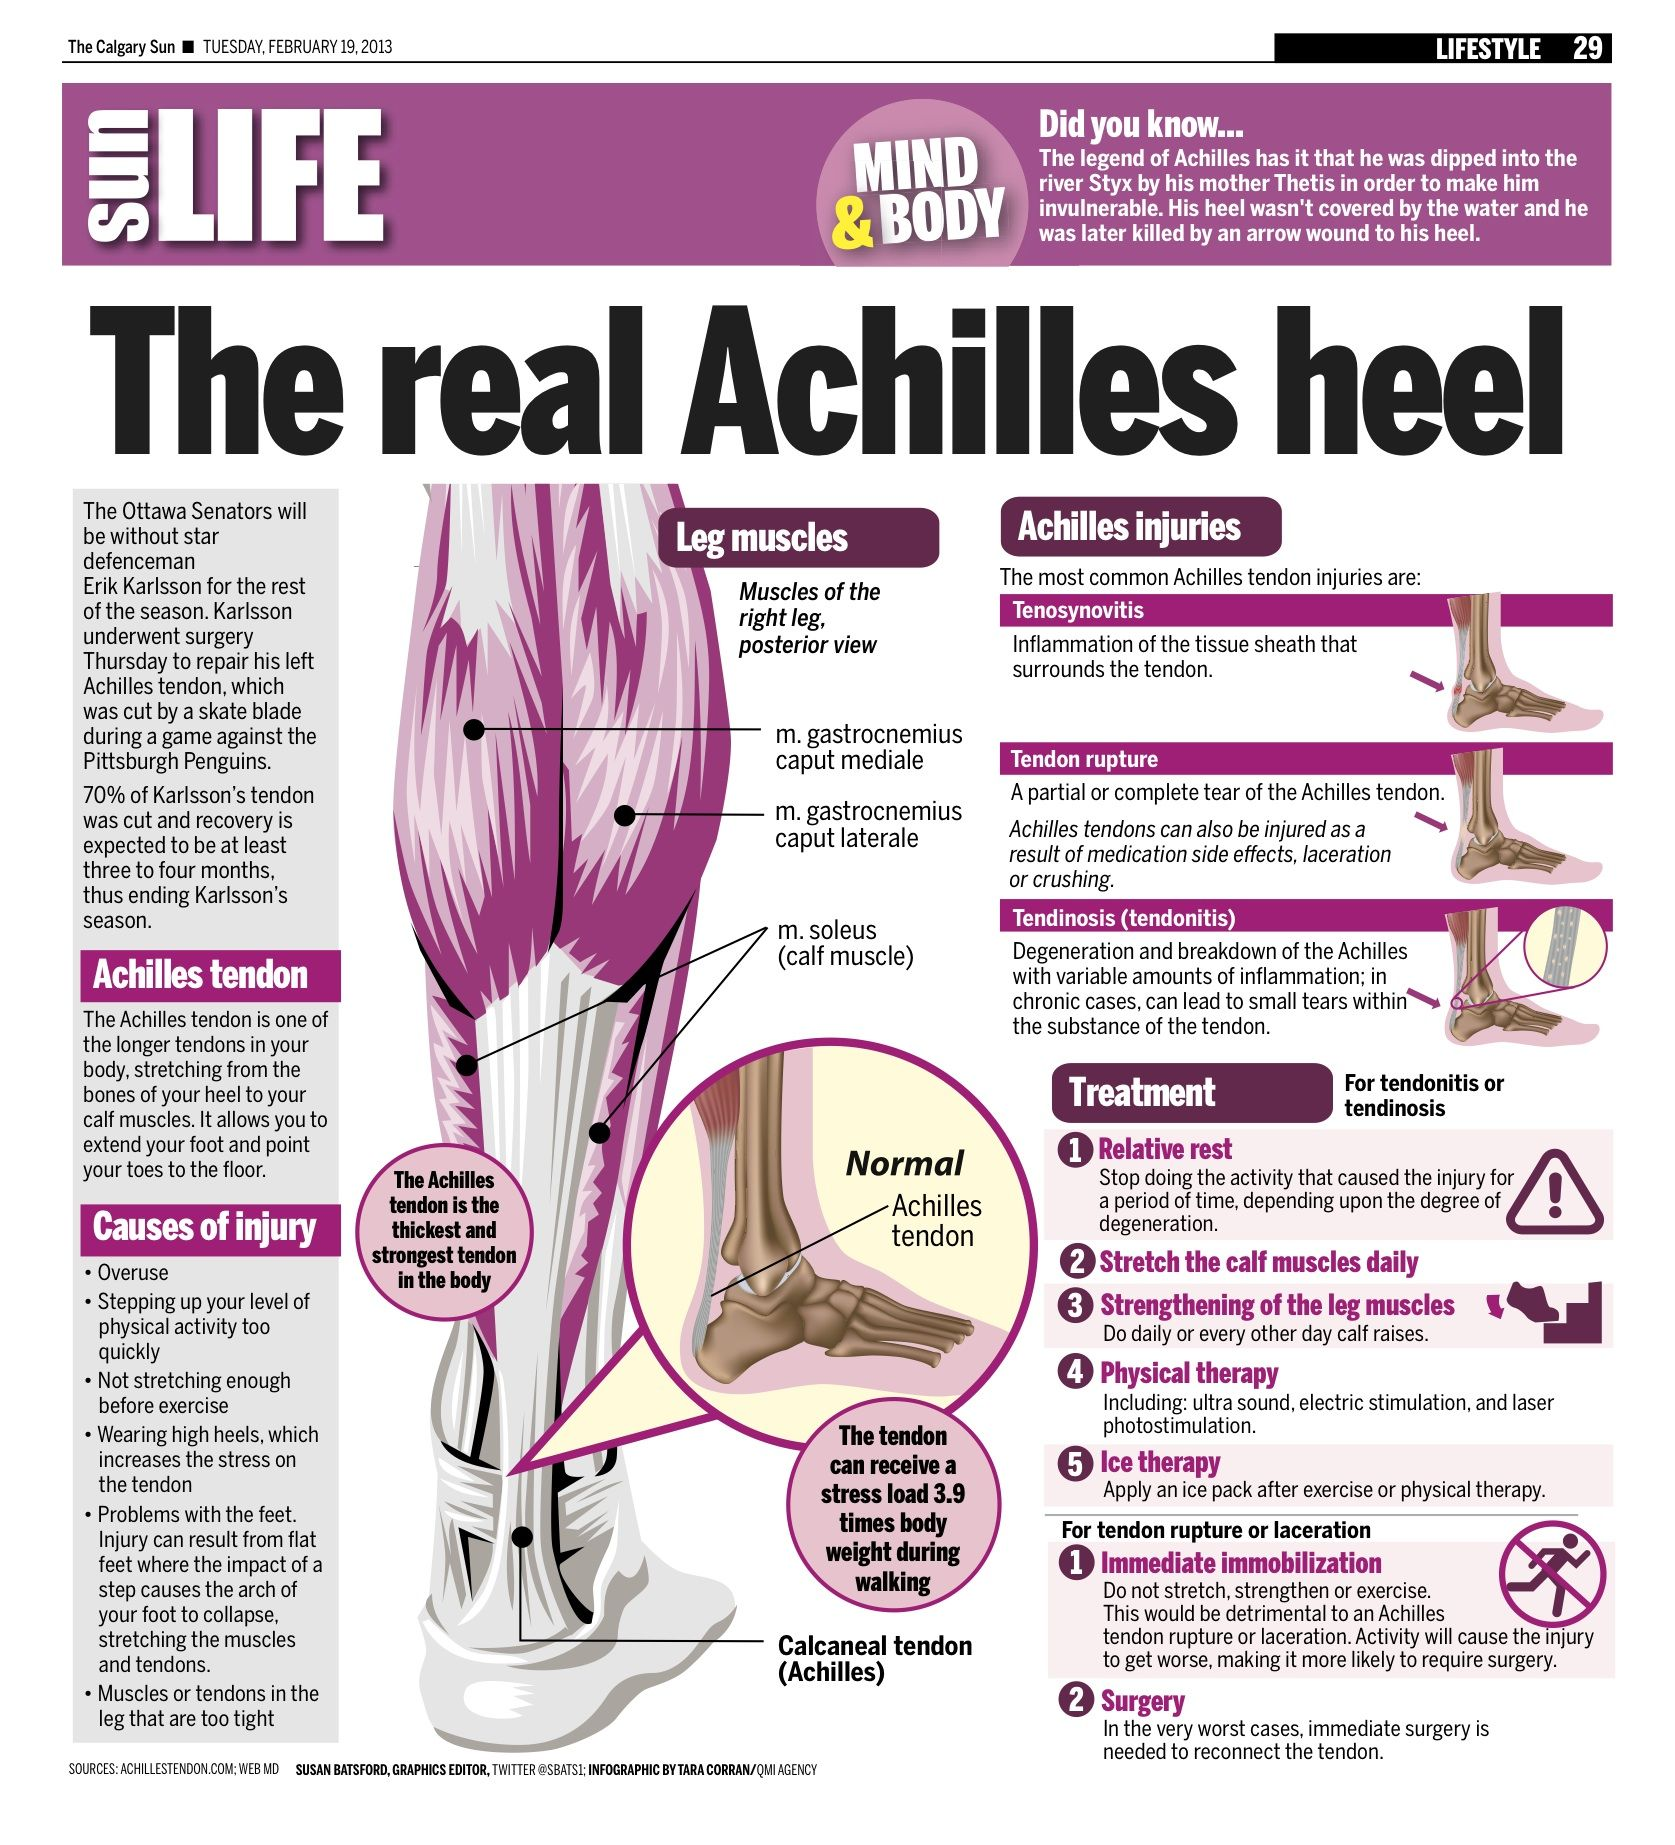 Achilles tendon rupture physical therapy - The Achilles Tendon Is One Of The Longer Tendons In Your Body Stretching From The